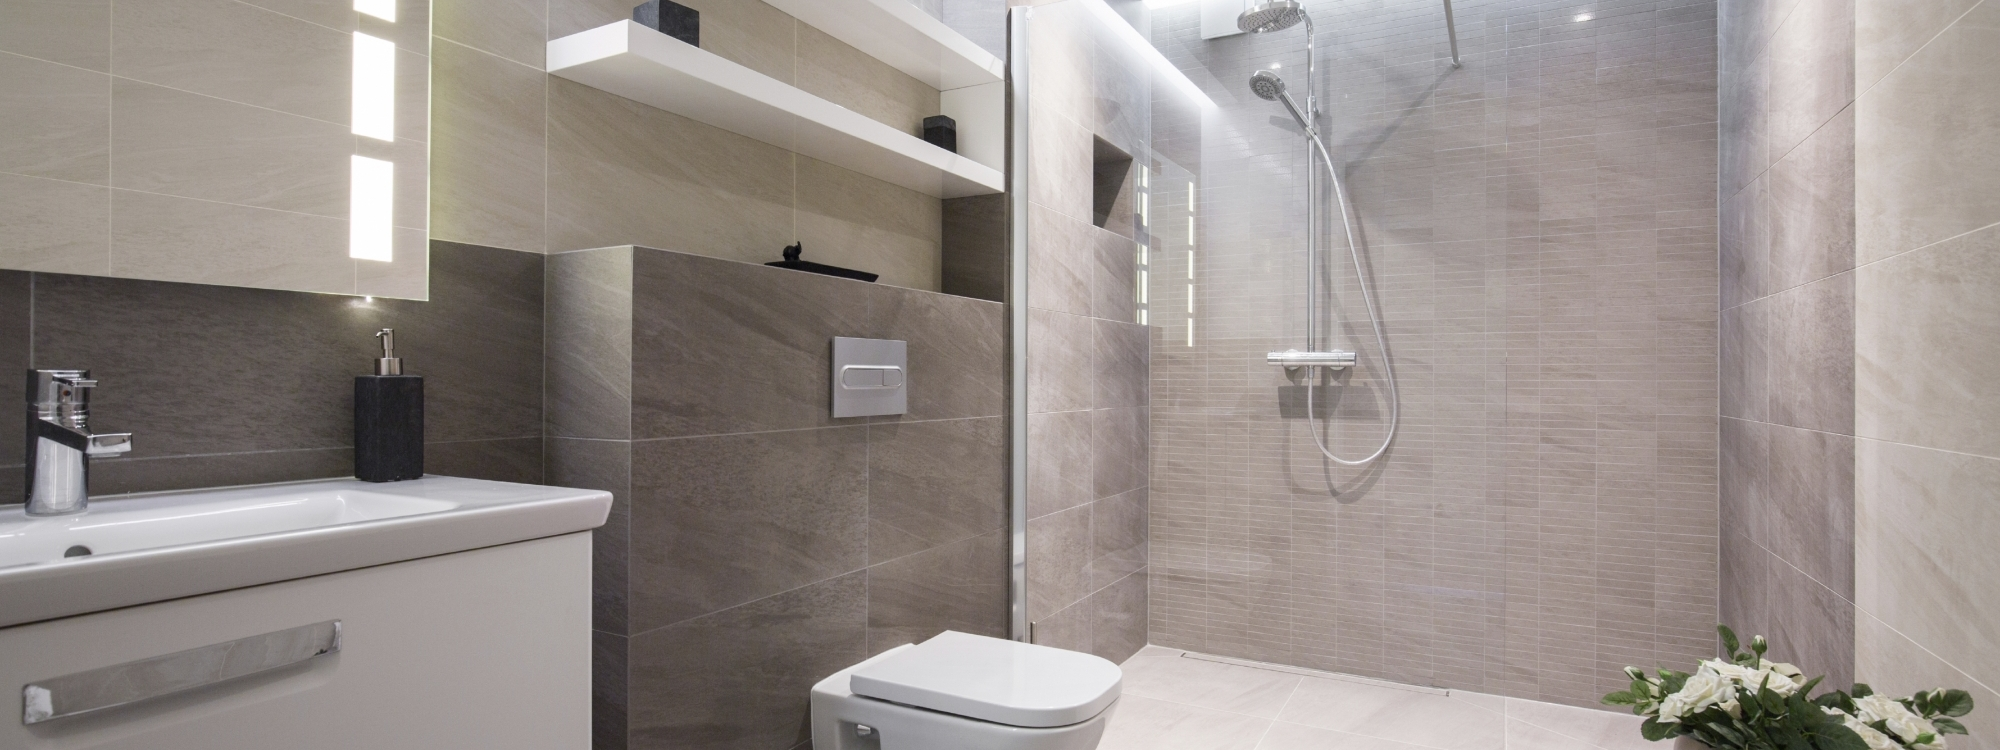 Discover The Finishing Touches That Complete Your Bathroom Design At More Bathrooms Leeds